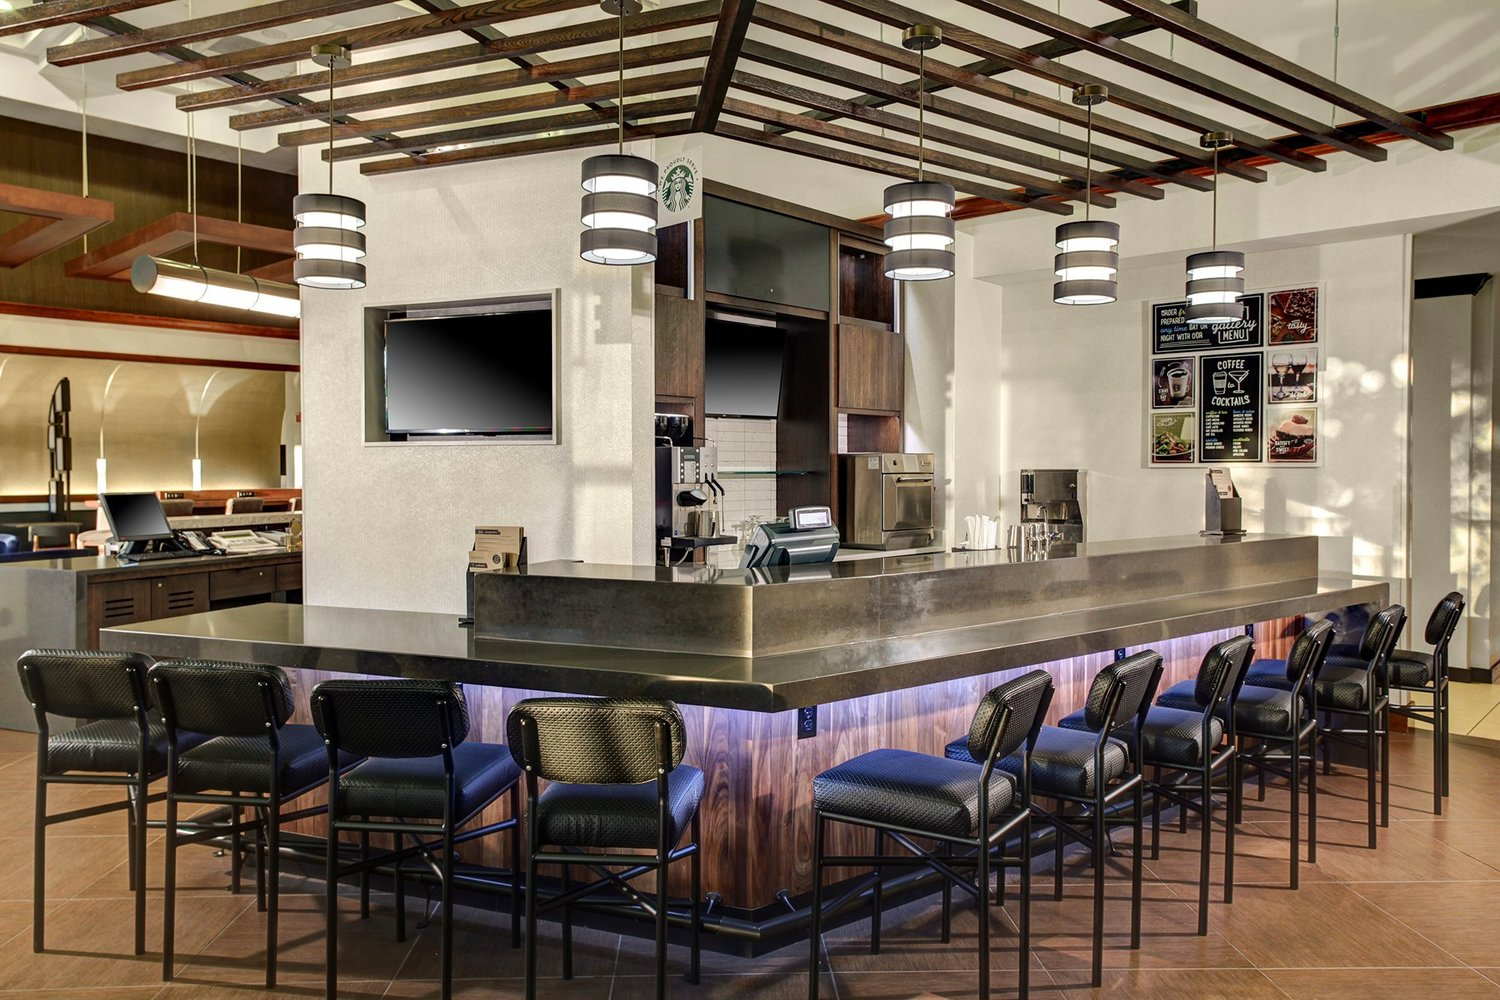 hyatt place chicago itasca itasca il jobs hospitality. Black Bedroom Furniture Sets. Home Design Ideas